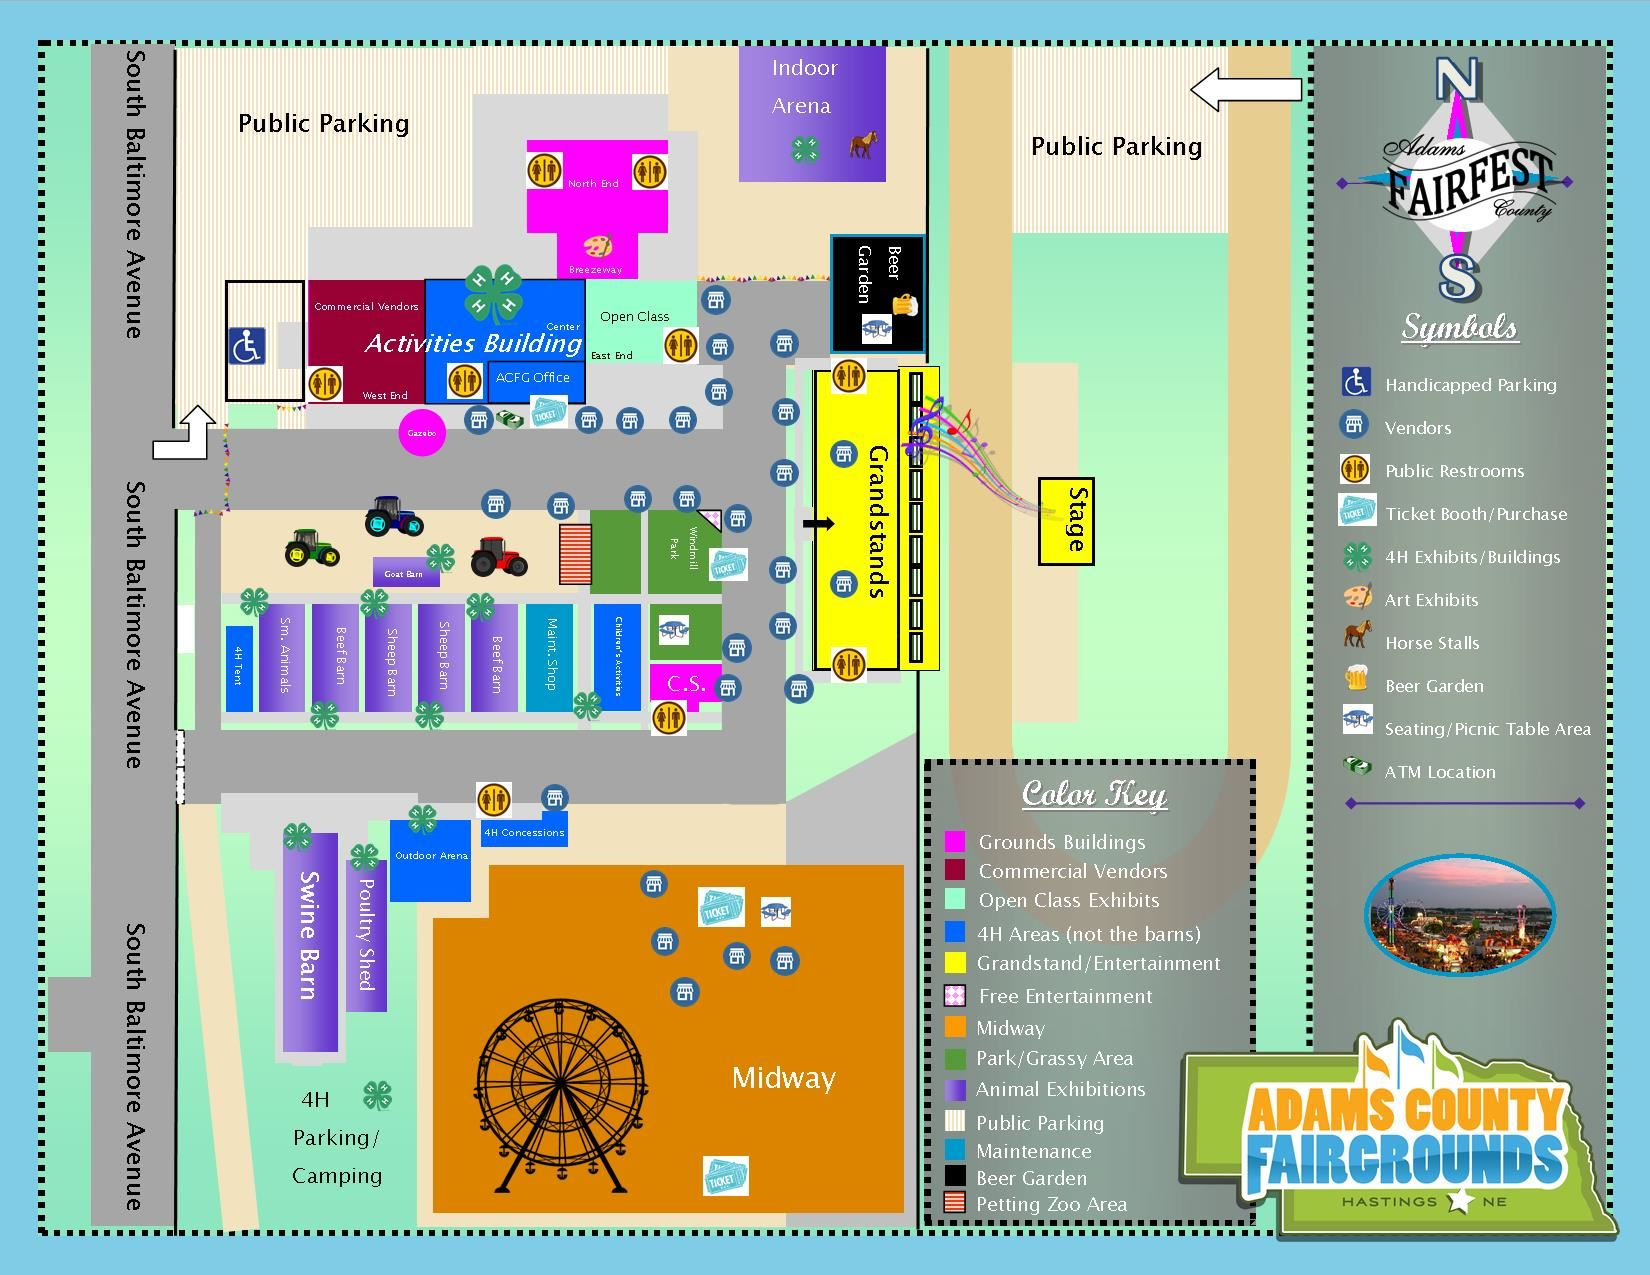 Map of Adams County Fairfest